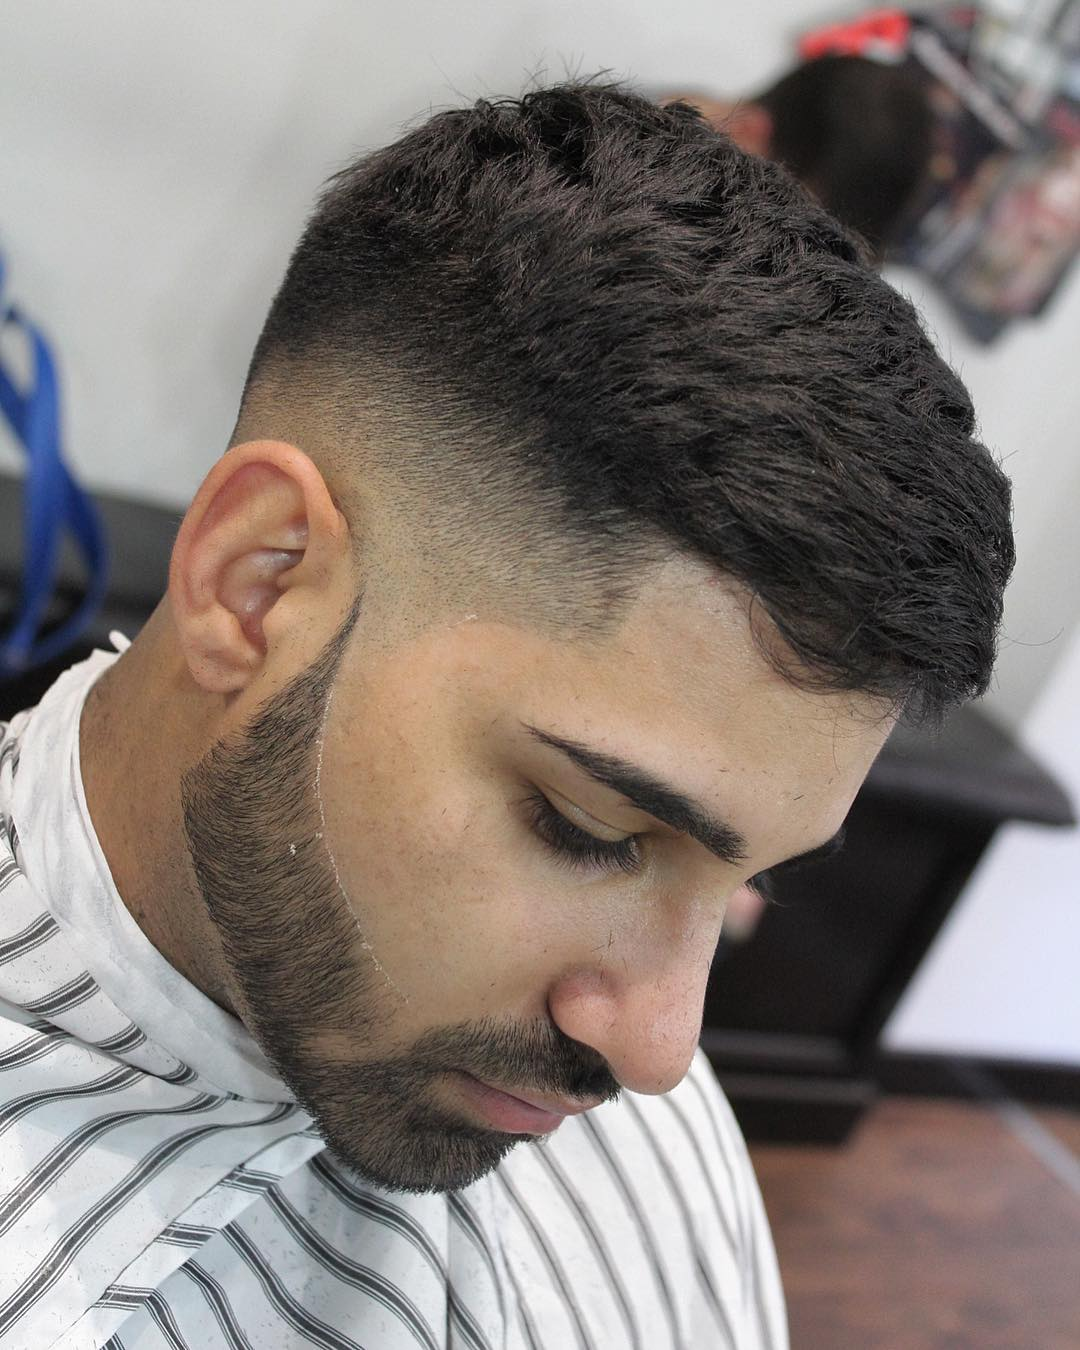 Barber.dylan .f Mens Haircuts For Short Thick Hair Mid Fade Short Beard